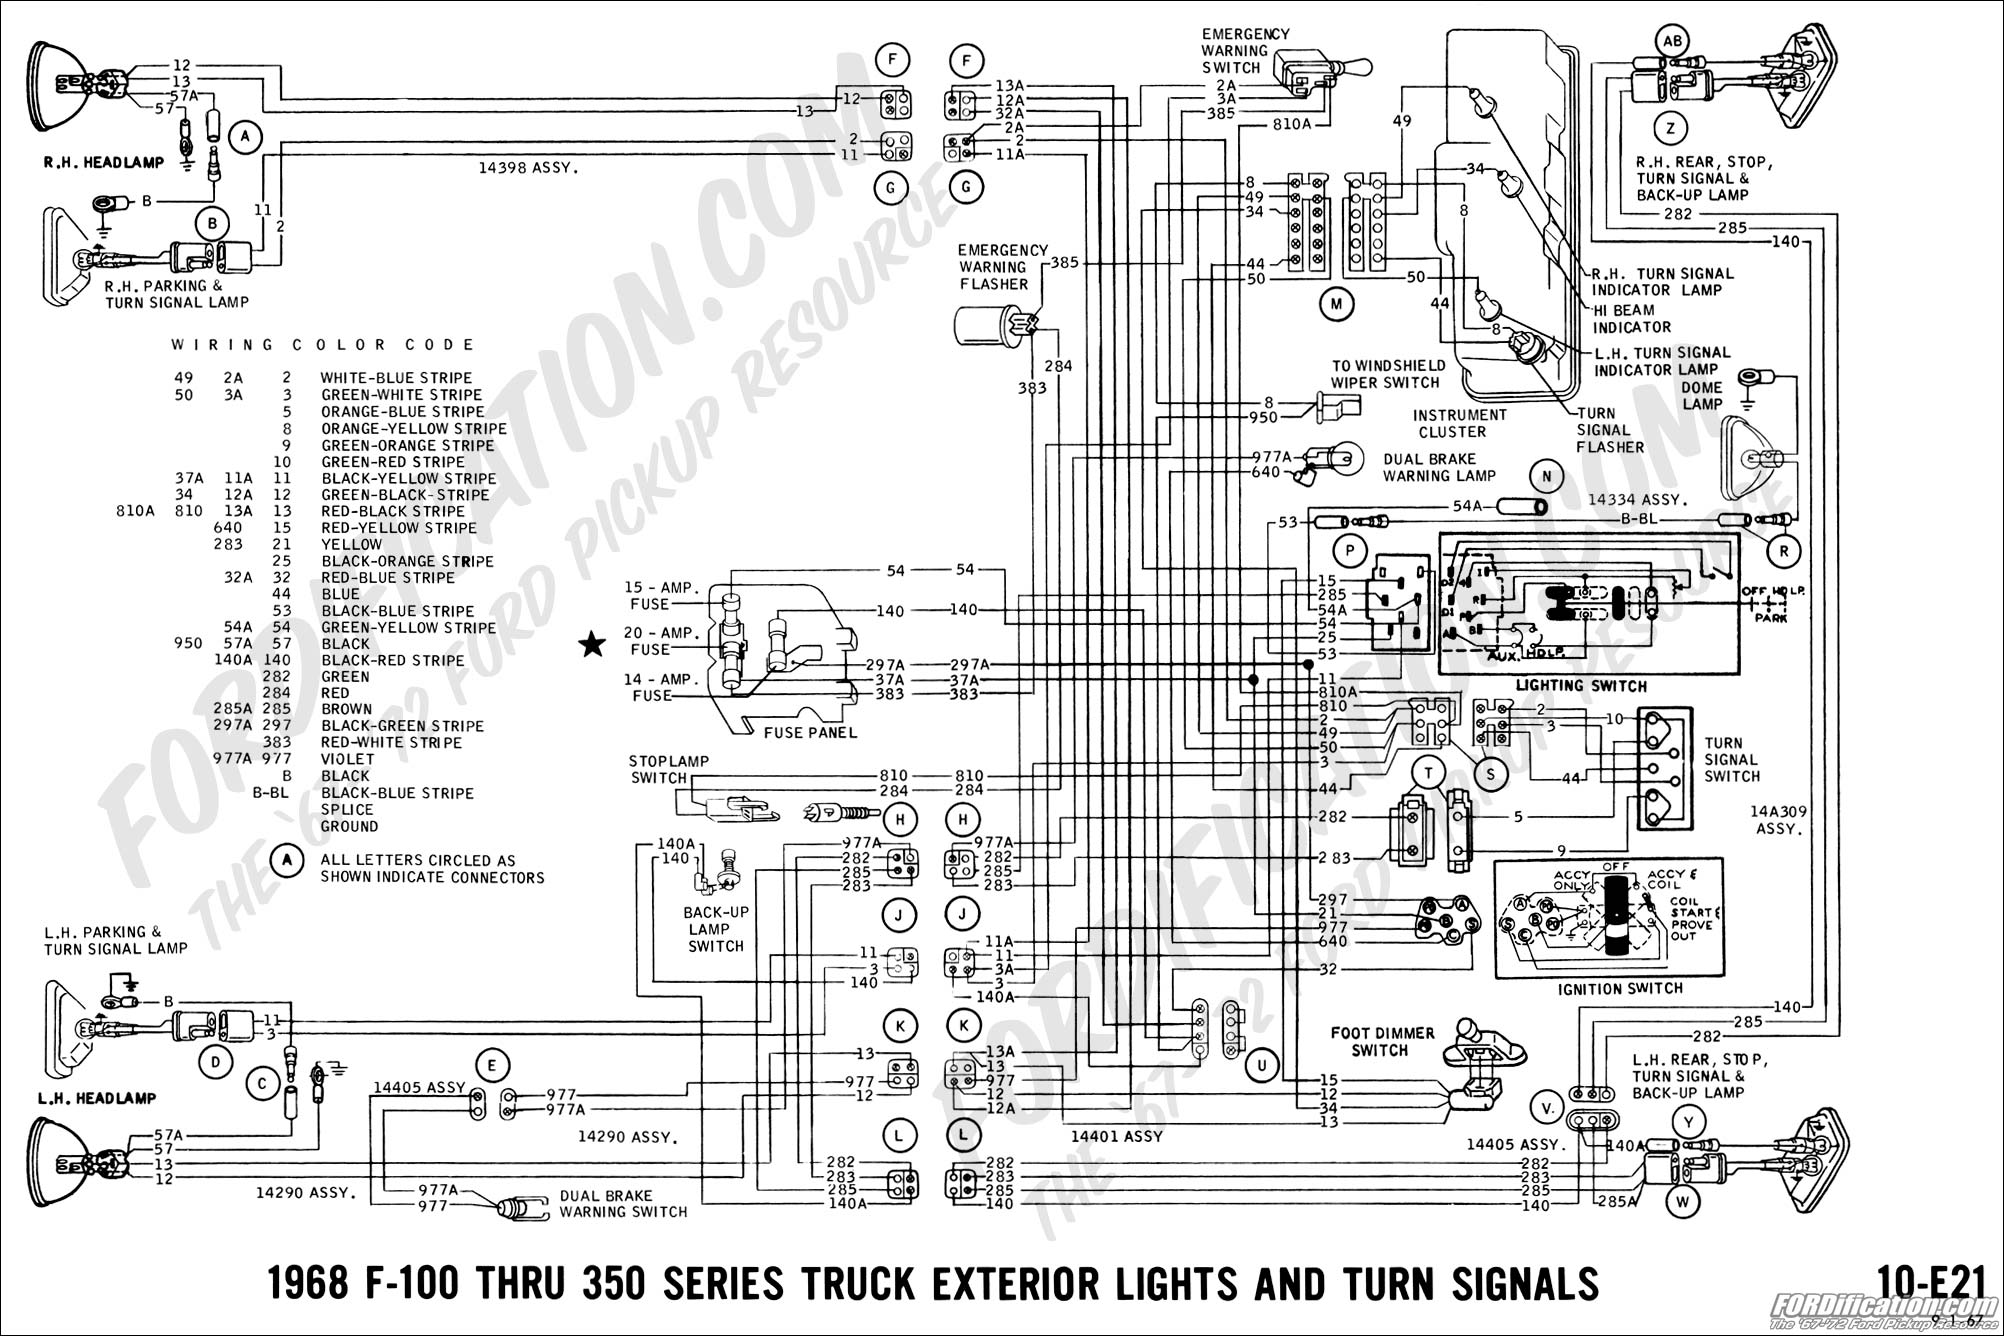 1992 ford bronco alternator wiring diagram ford alternator wiring 77 f250 wiring diagram on 1992 ford bronco alternator wiring diagram